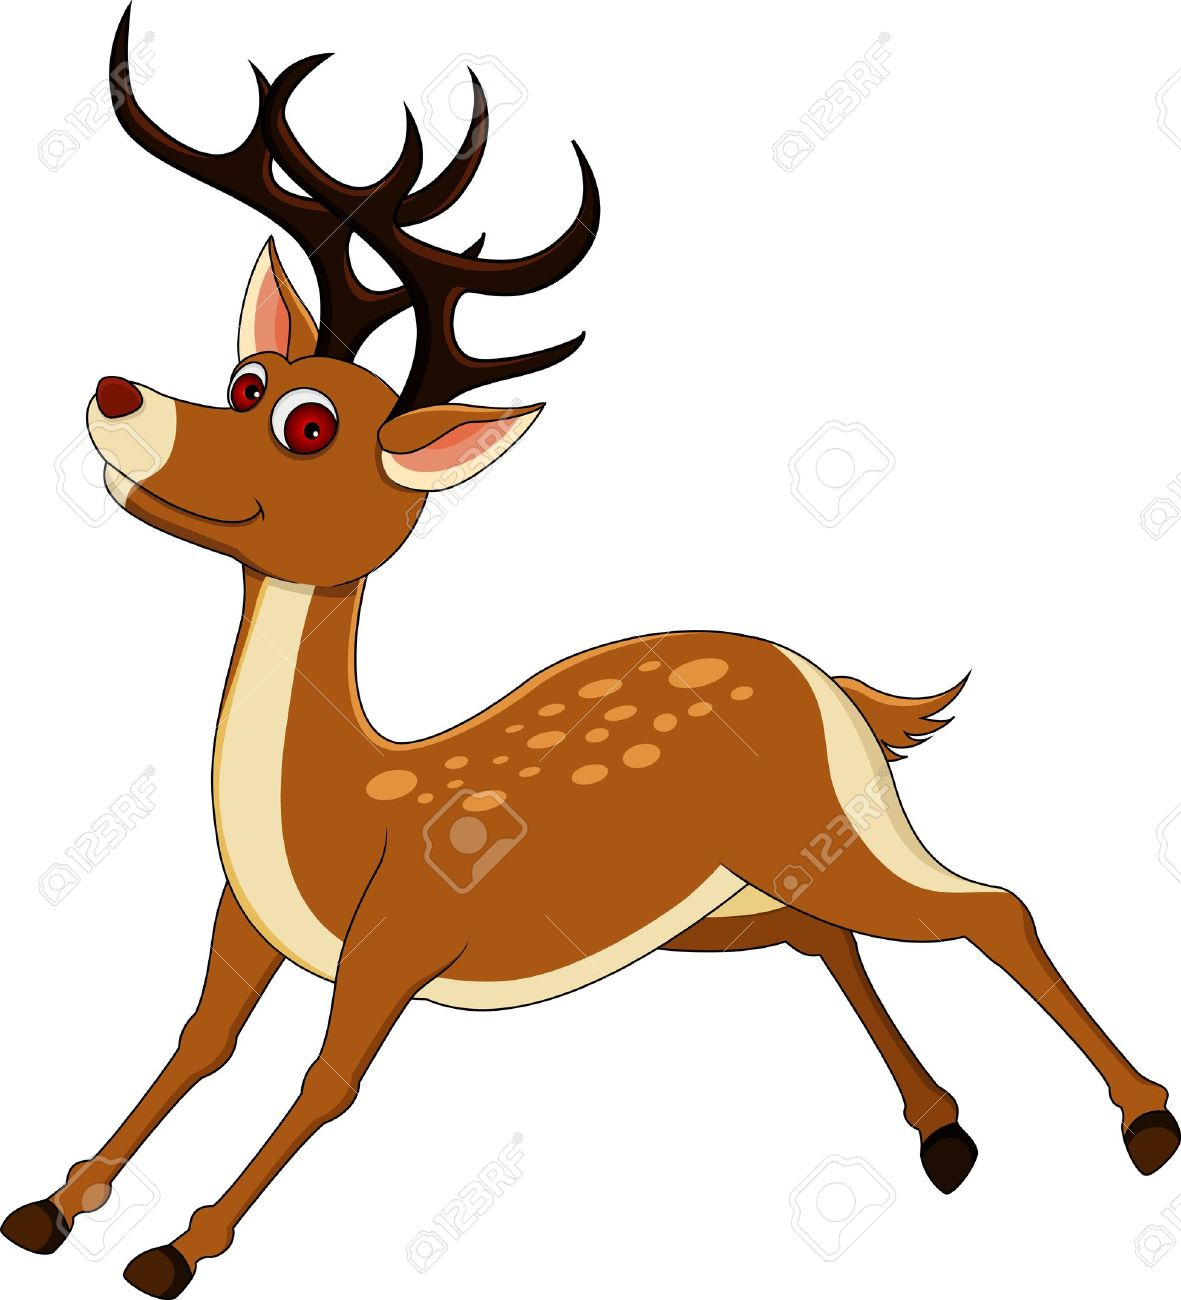 Fawn clipart #13, Download drawings